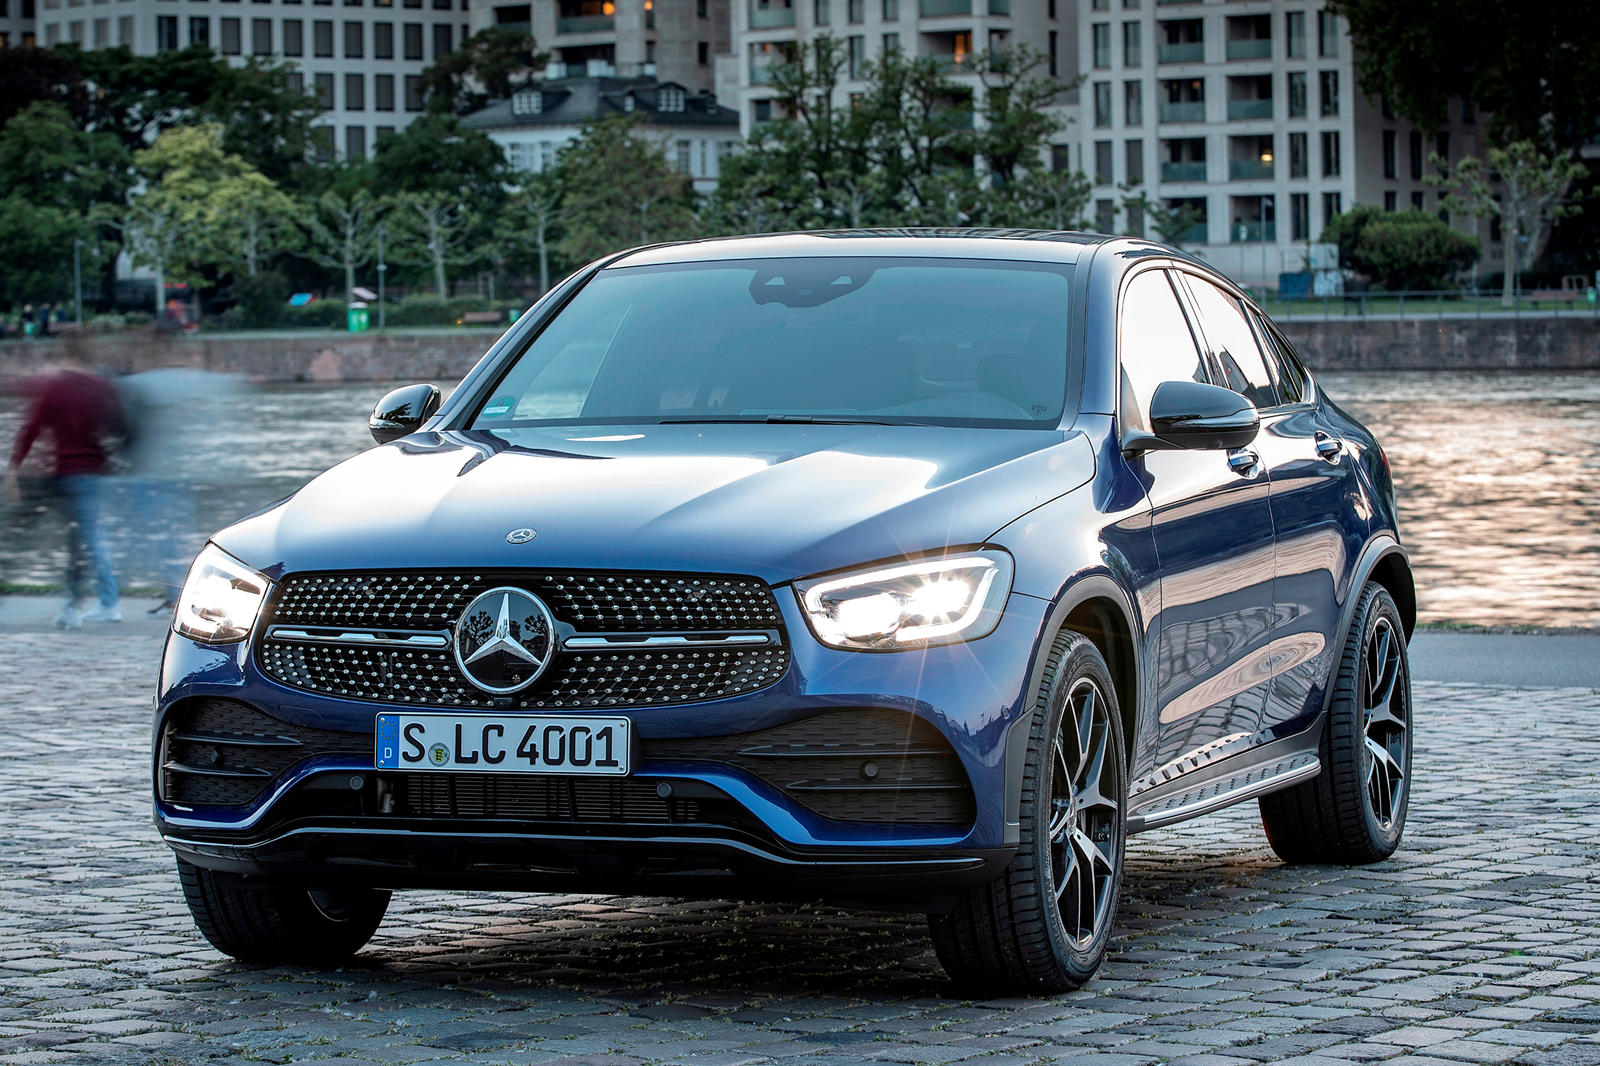 2020 Mercedes Benz Glc Class Coupe Review Trims Specs Price New Interior Features Exterior Design And Specifications Carbuzz